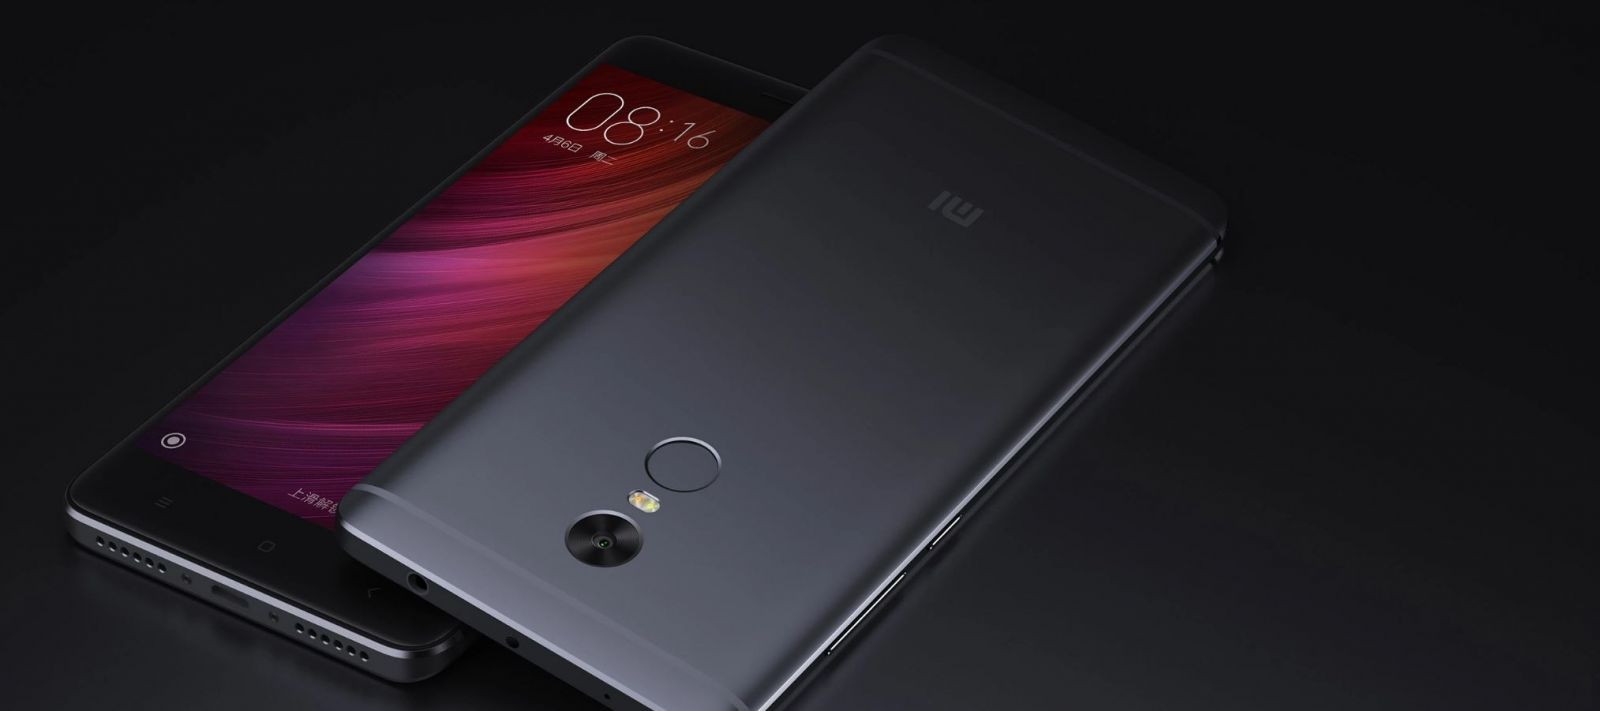 Xiaomi Redmi Note 4 3gb 32gb Black Pro Garansi Resmi Tam Product Showcase